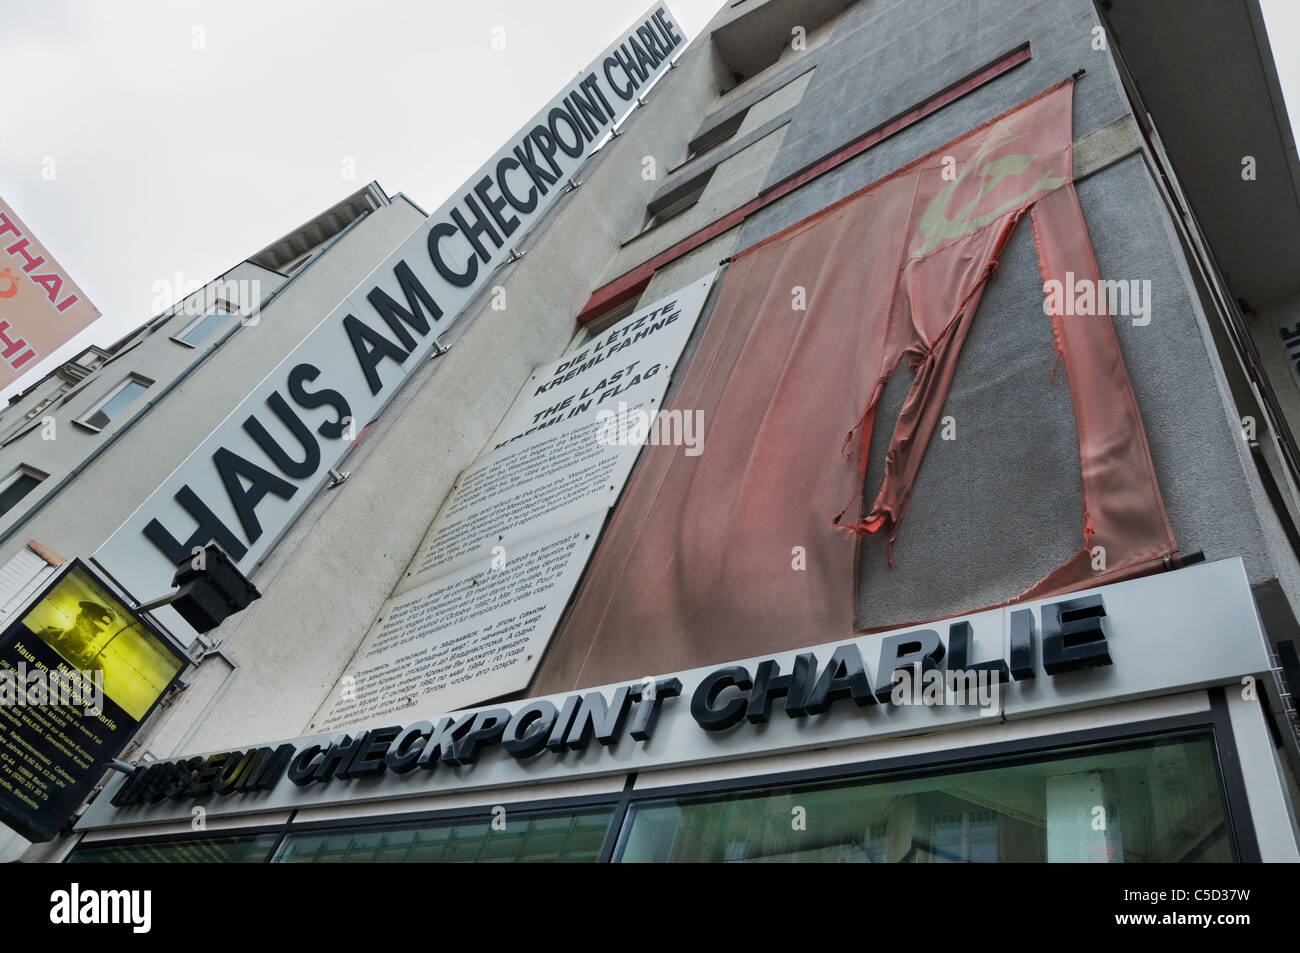 Letzte sowjetische Flagge am Checkpoint Charlie Stockfoto